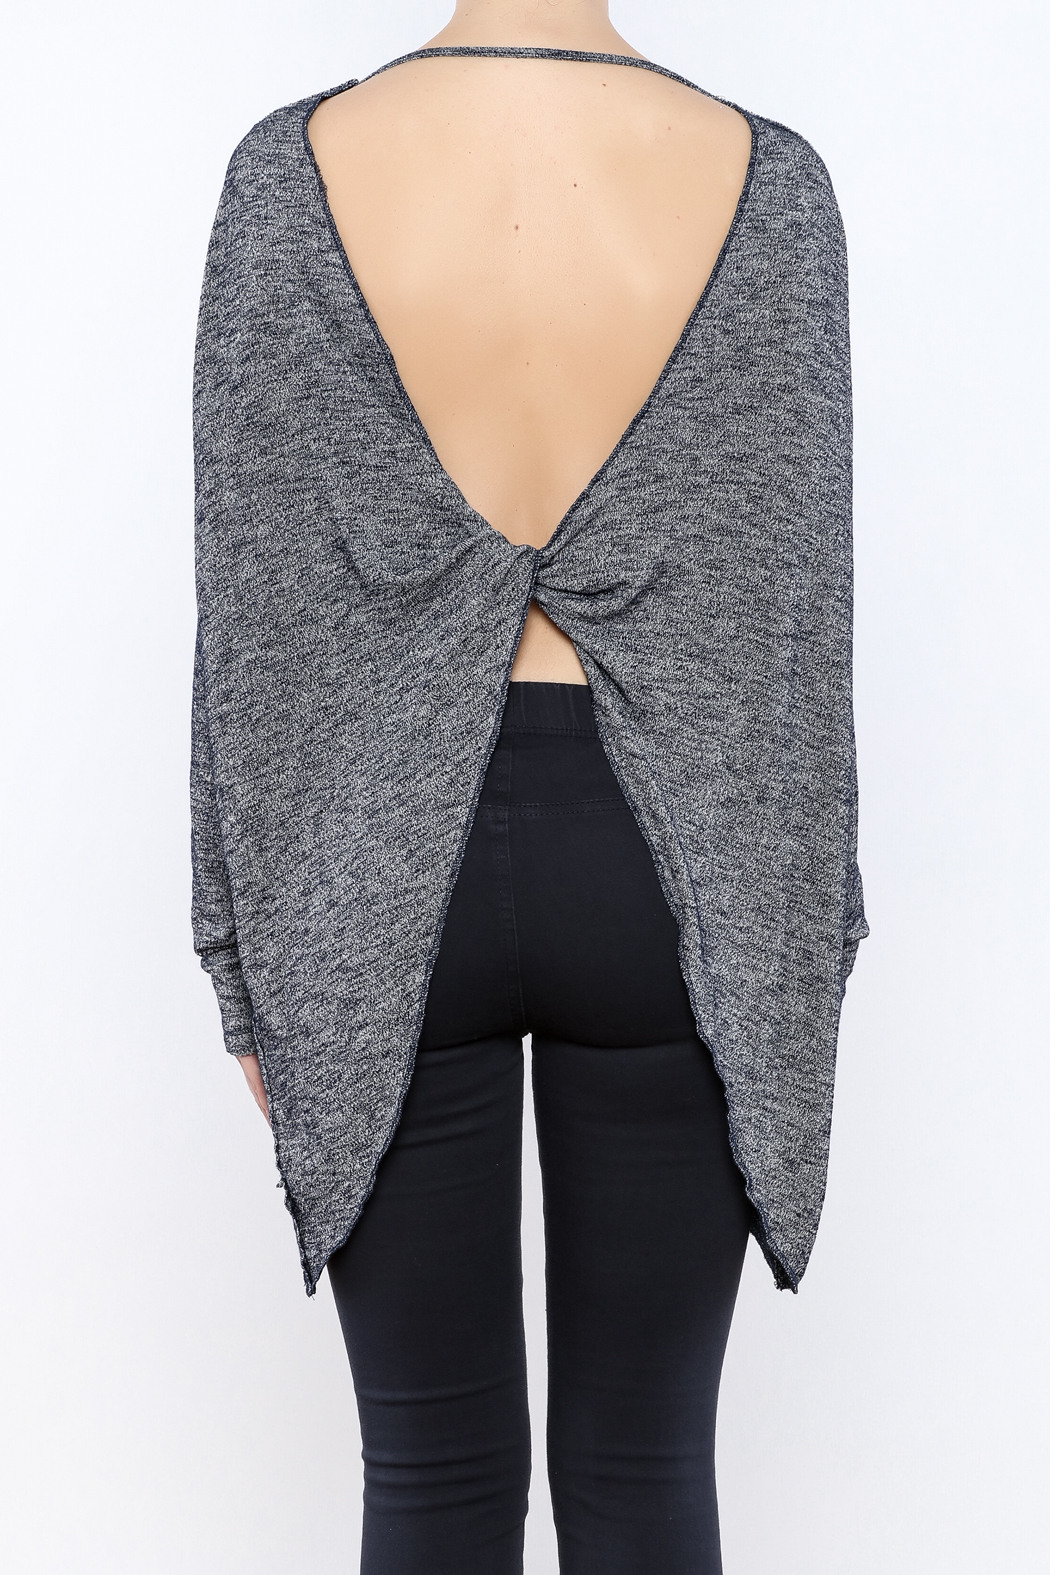 Elan Knotted Open Back Top - Back Cropped Image